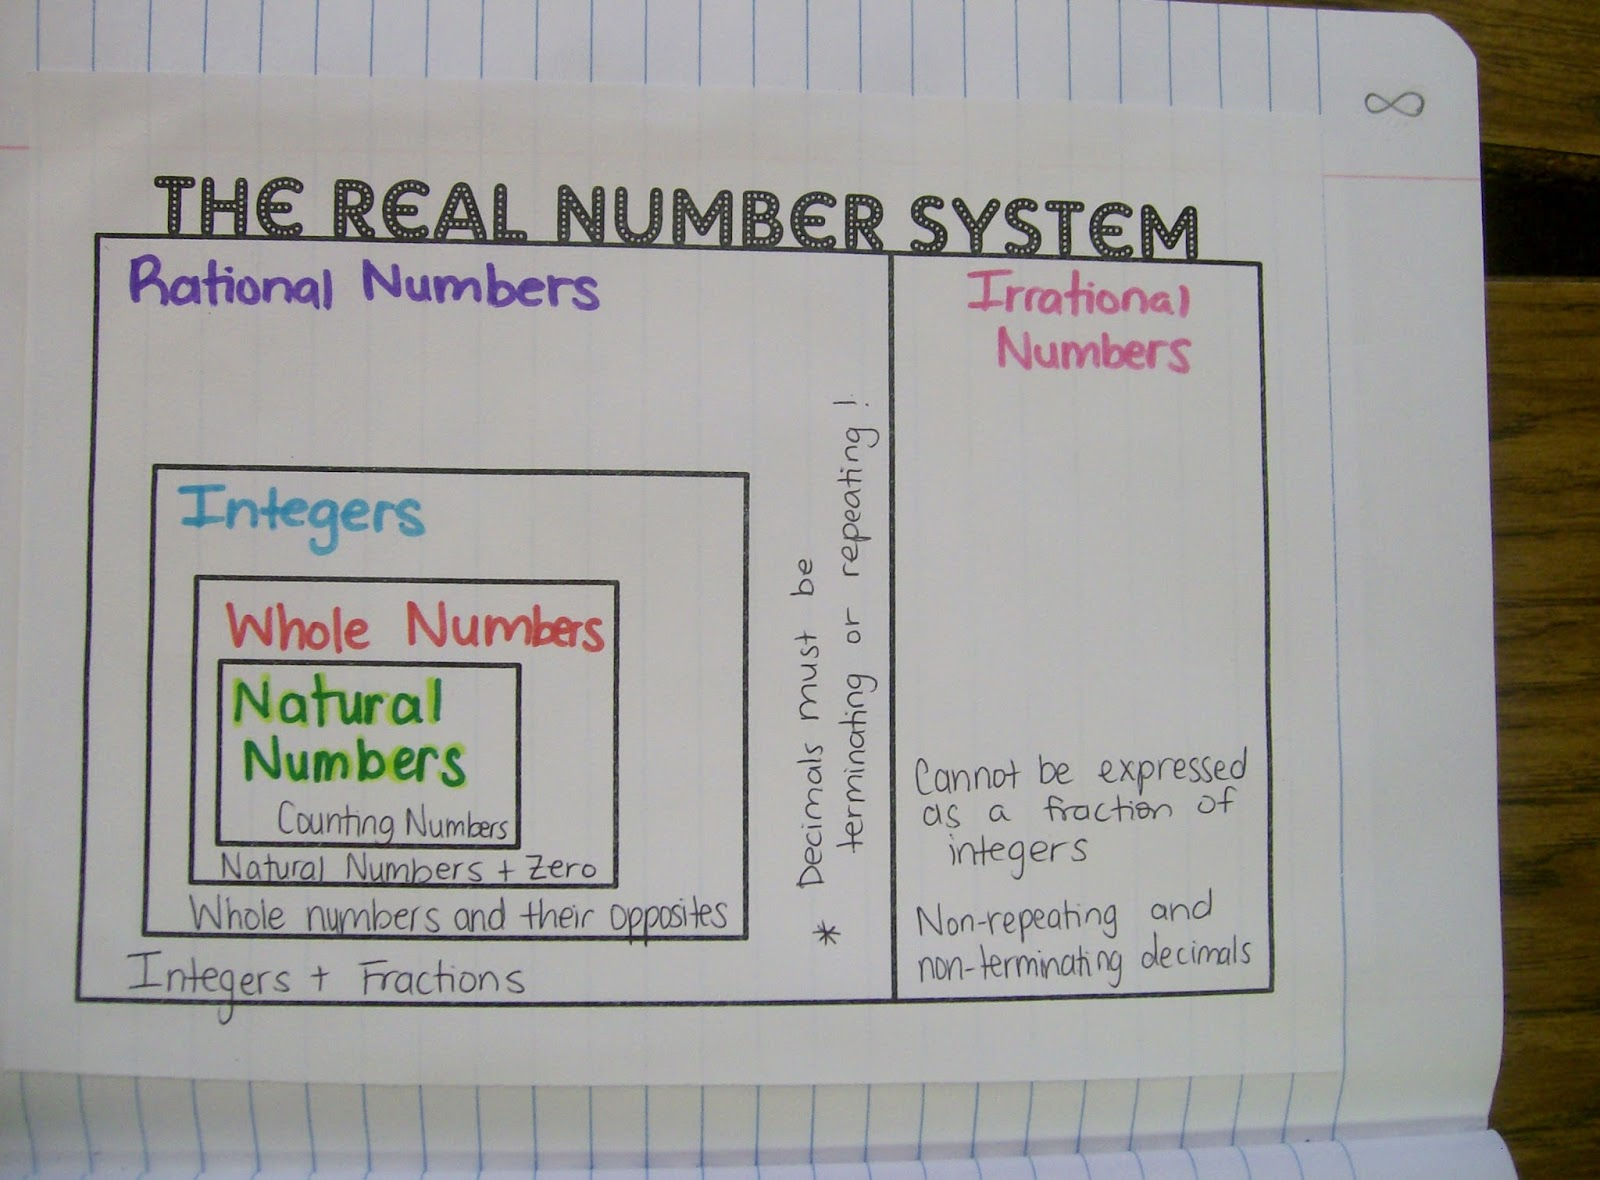 Real Number System Diagram Directv 8 Channel Swm Solar Foldable Graphic Organizer Page 2 Pics